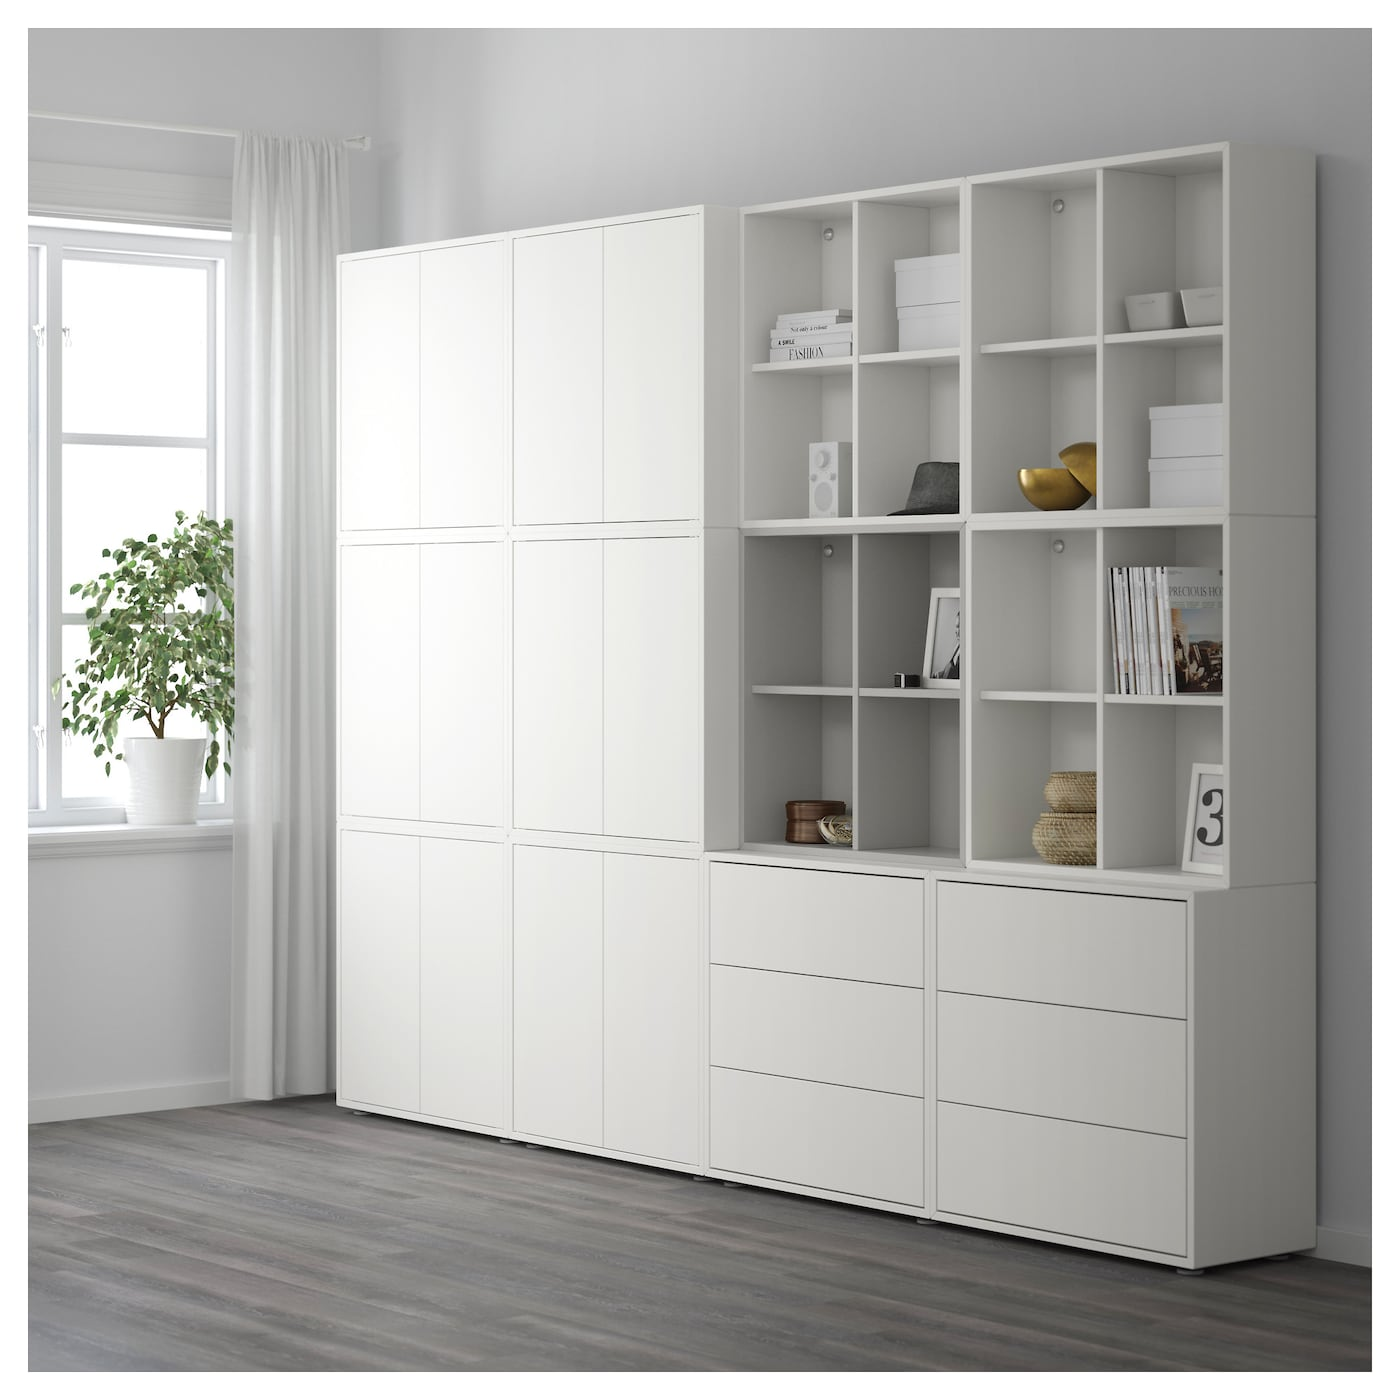 eket cabinet combination with feet white light grey 280 x 35 x 212 cm ikea. Black Bedroom Furniture Sets. Home Design Ideas